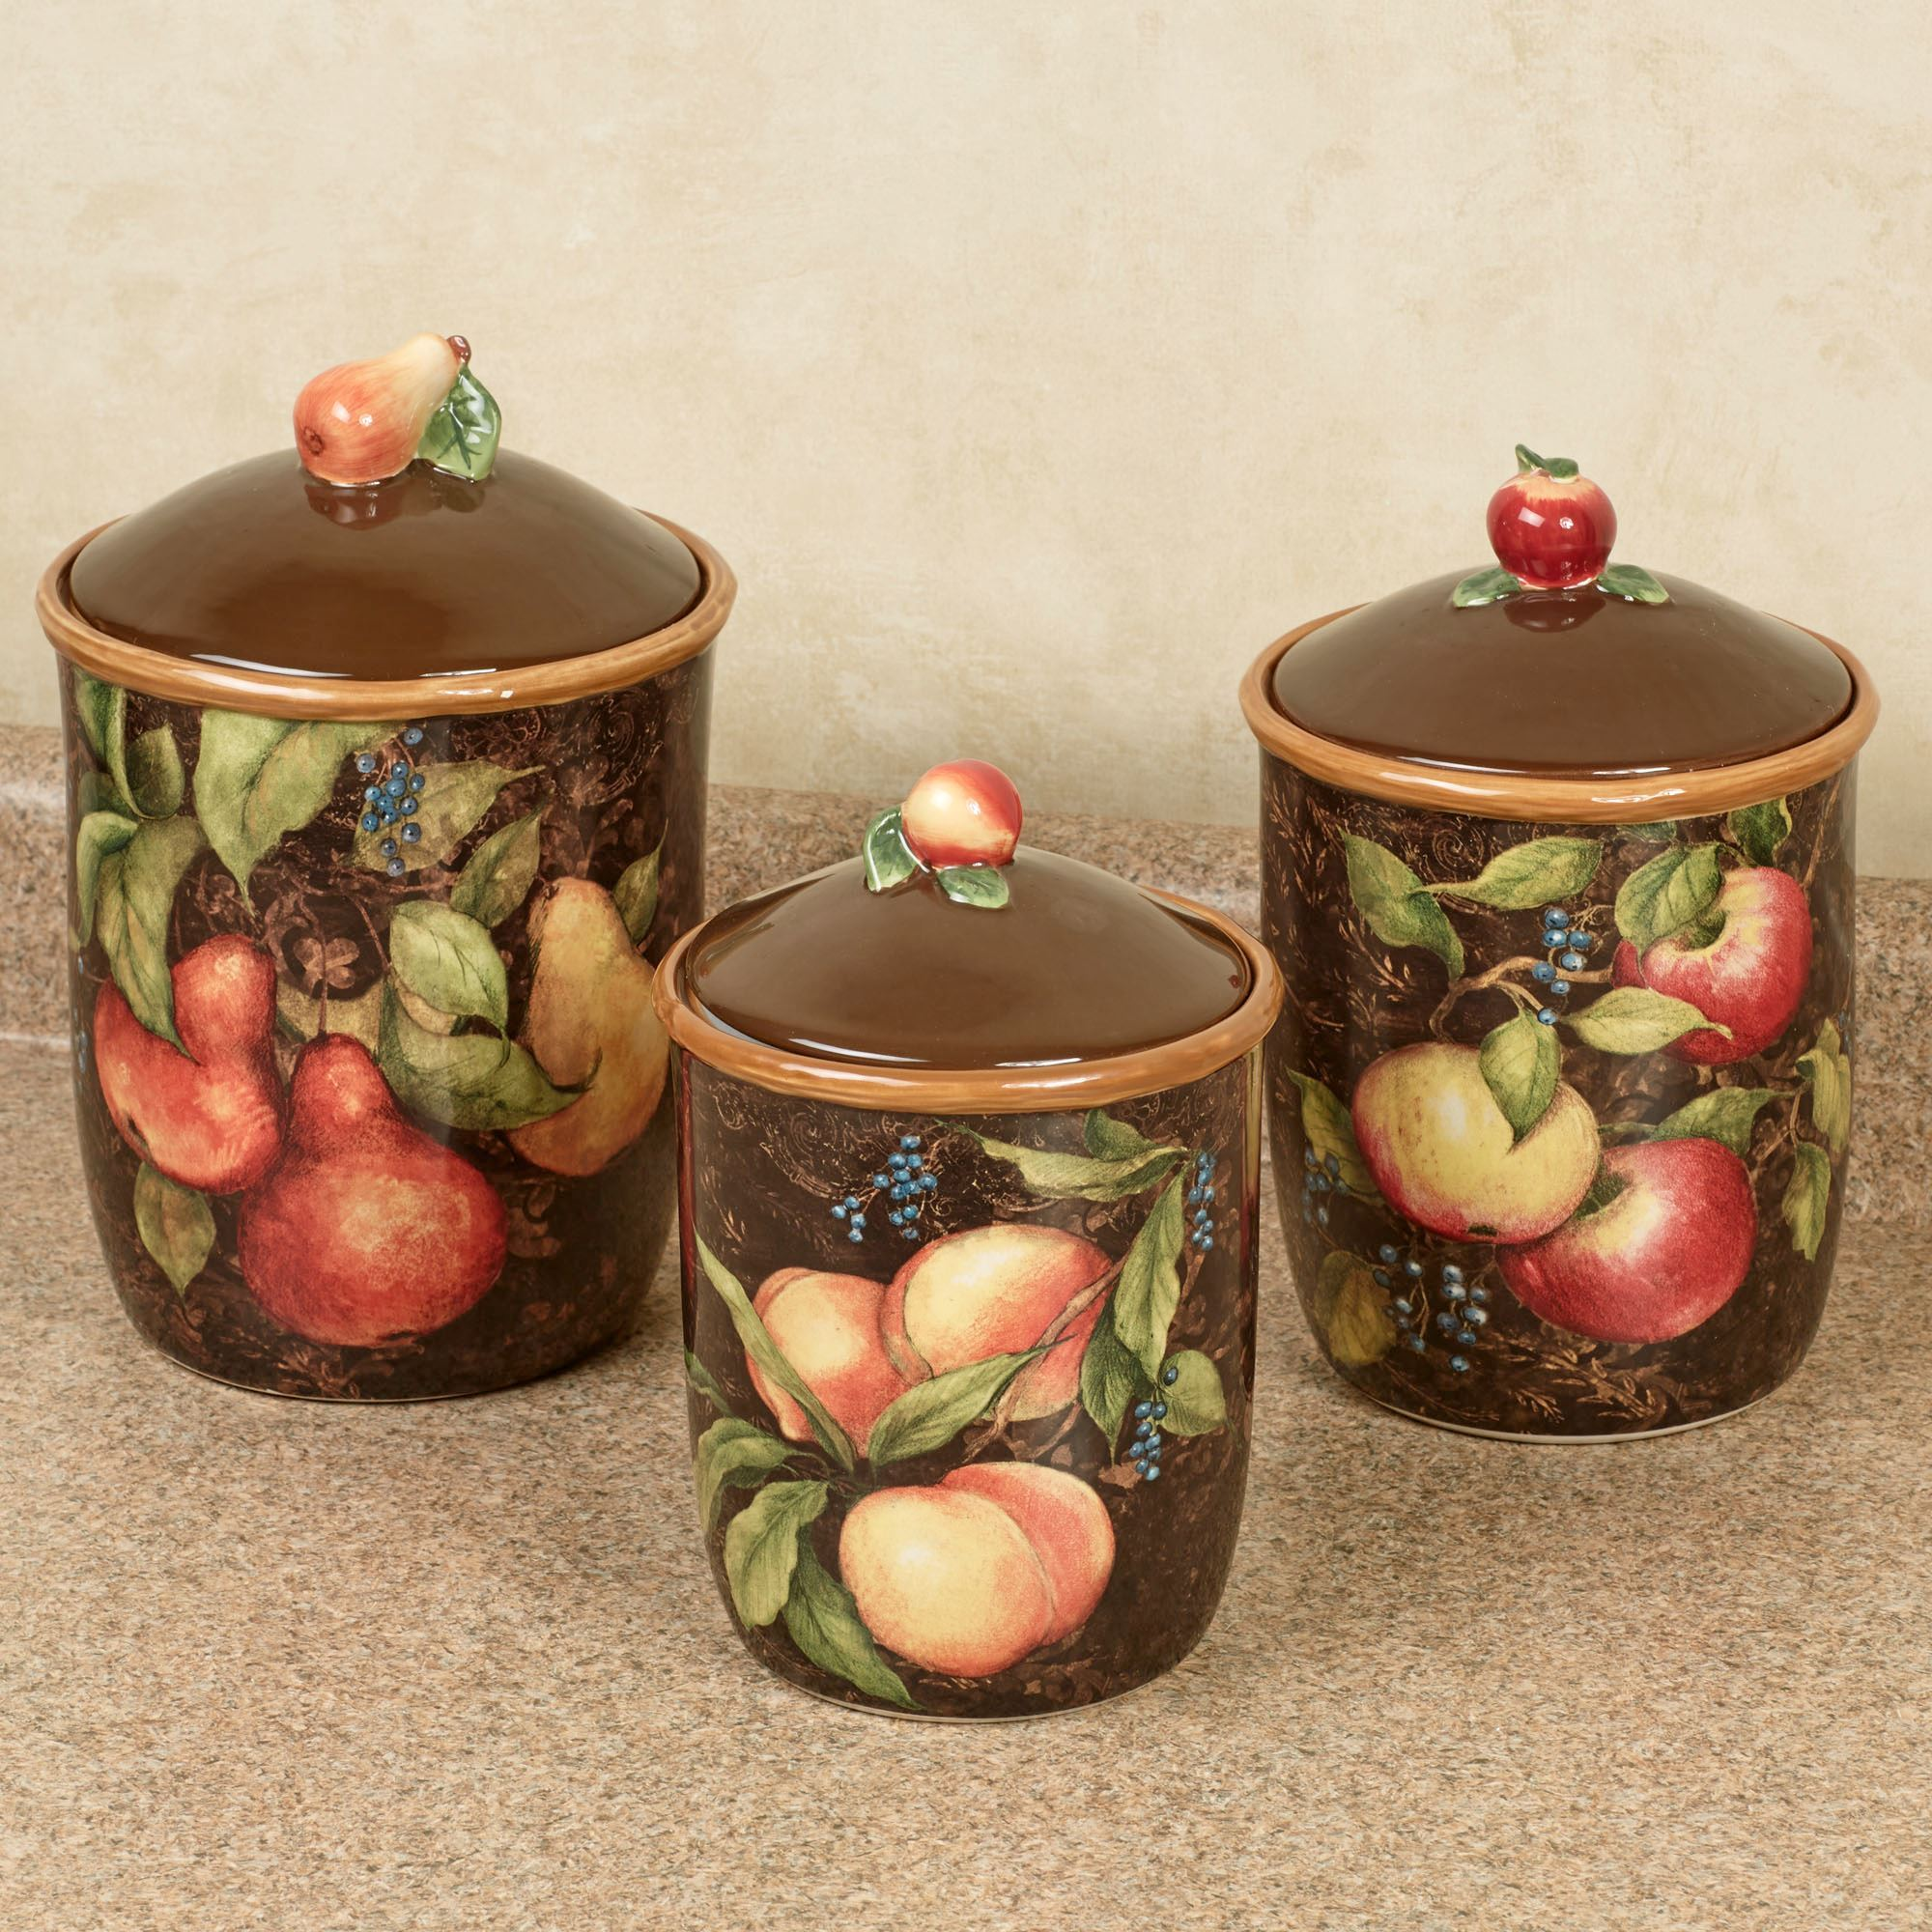 Touch To Zoom Capri Fruit Kitchen Canisters